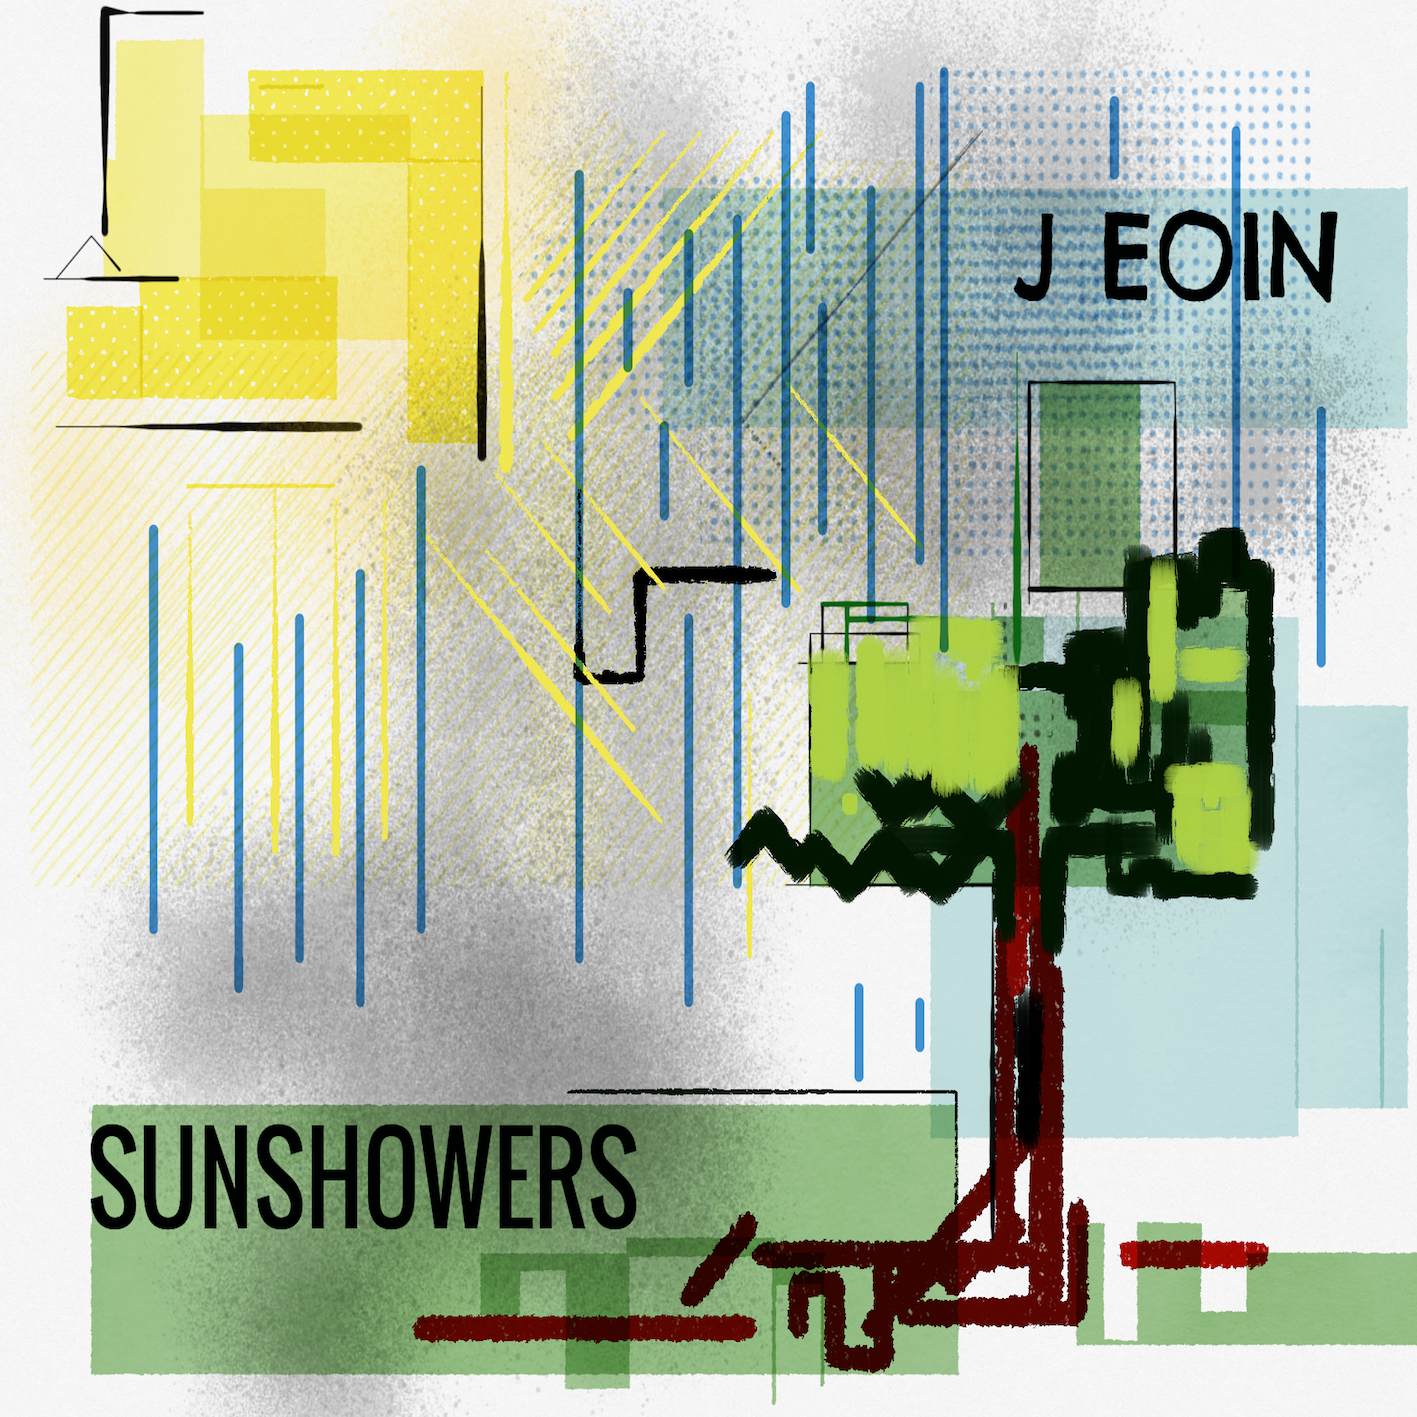 Sunshowers Cover Art by Simone Scafiti